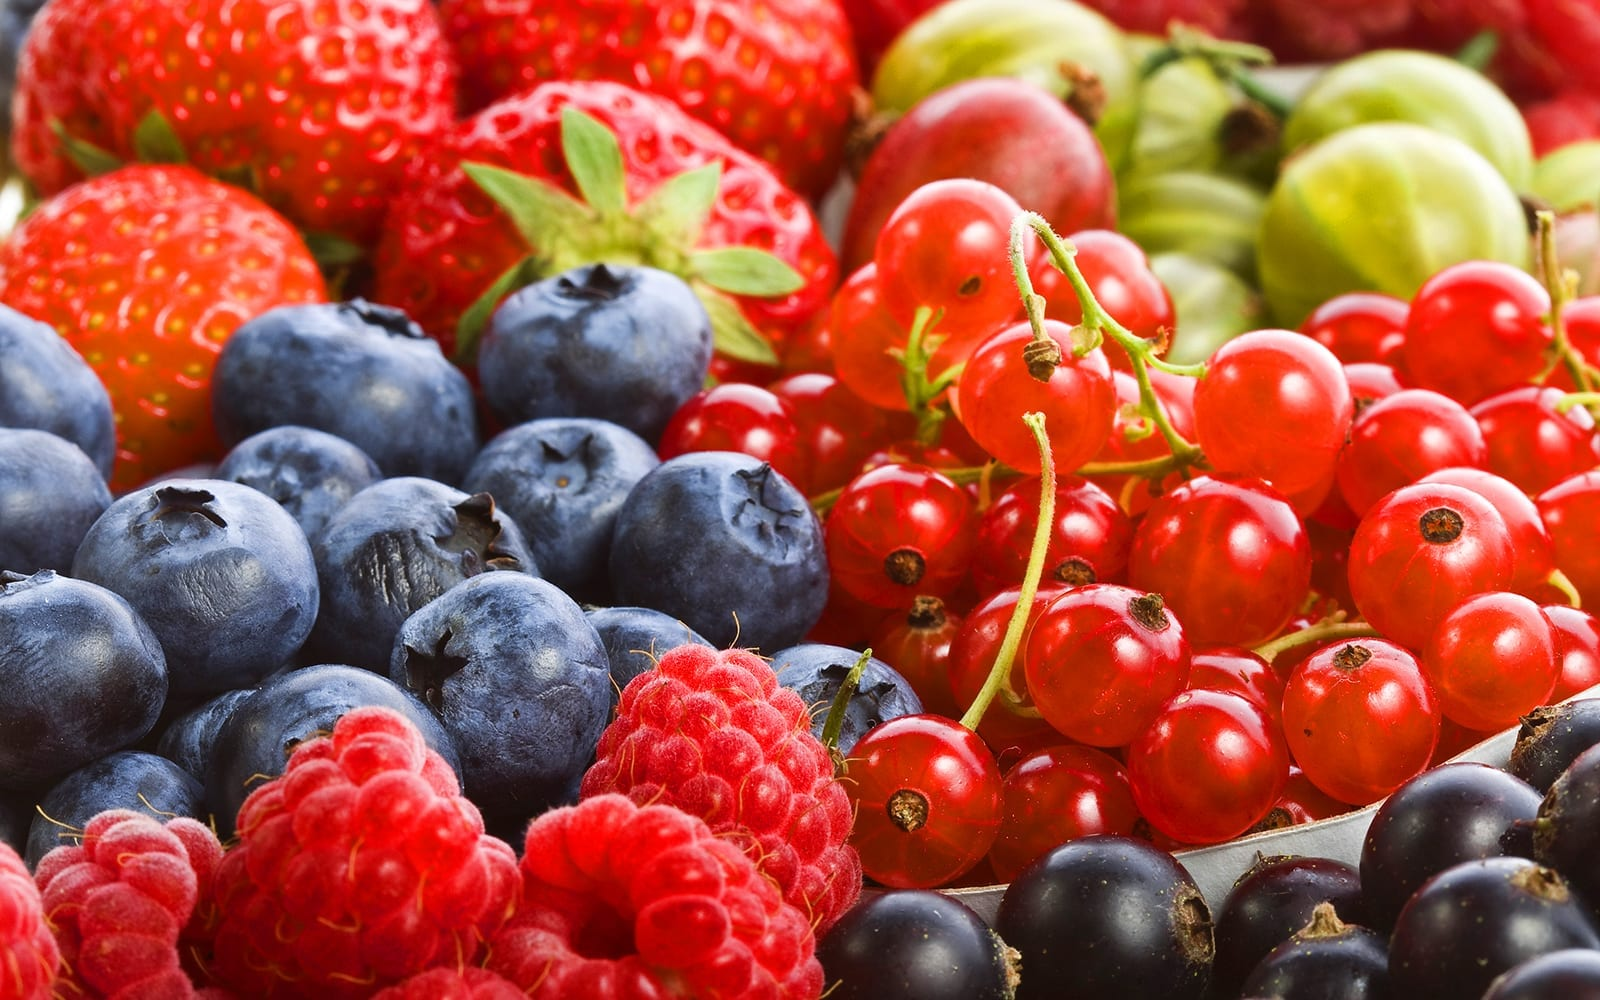 Assortment of Fruits and Berries